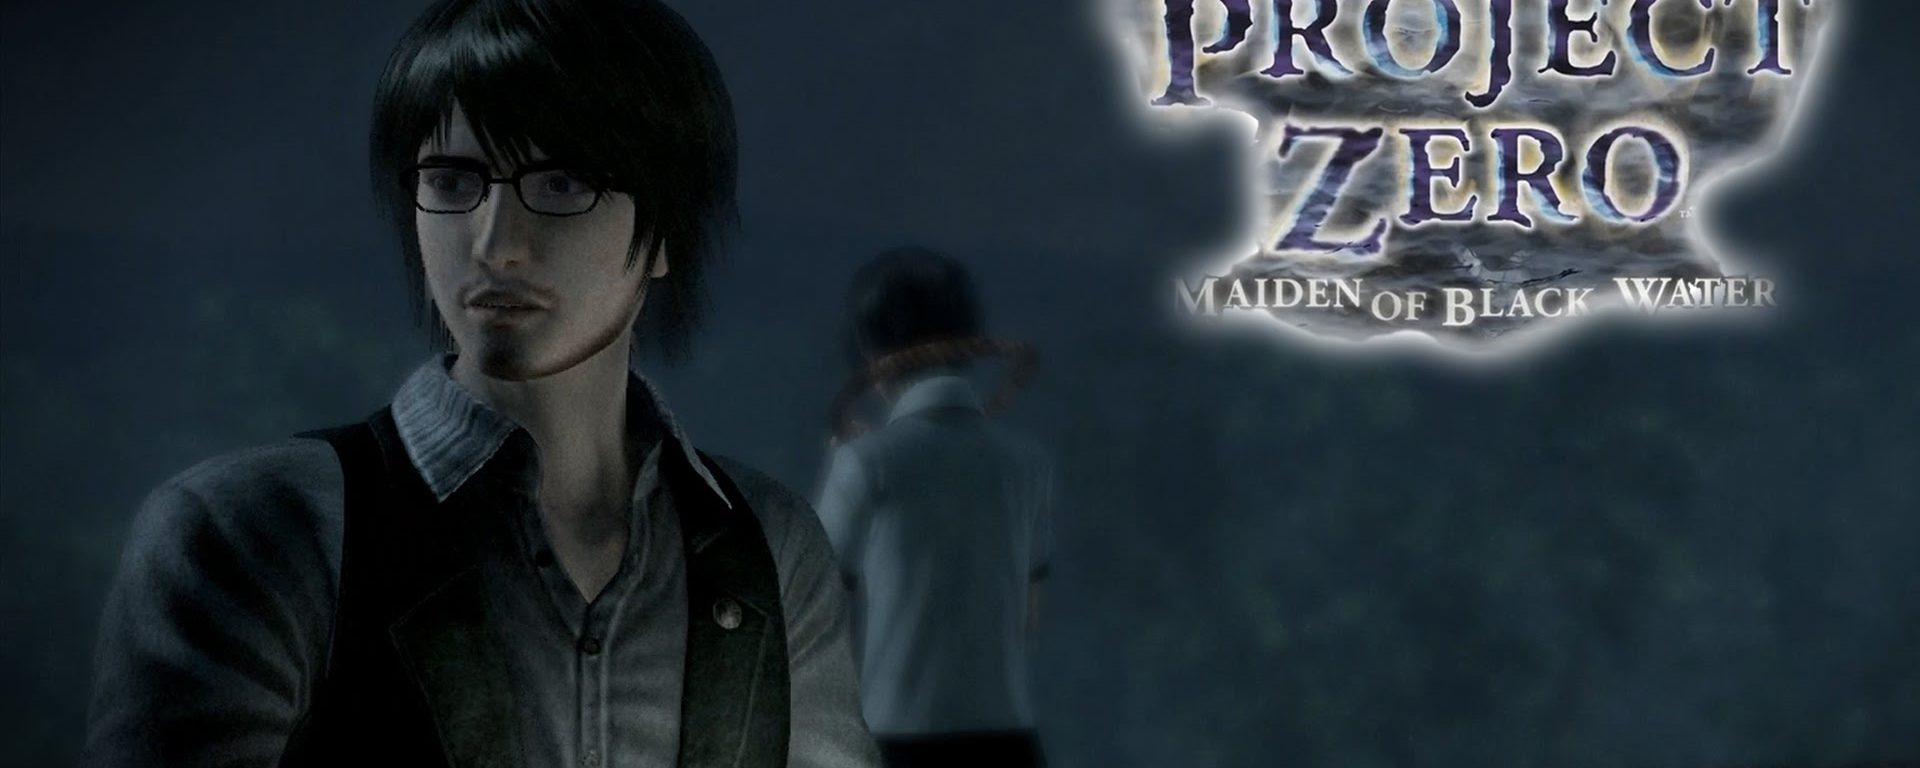 Fatal Frame Maiden of Black Water Review